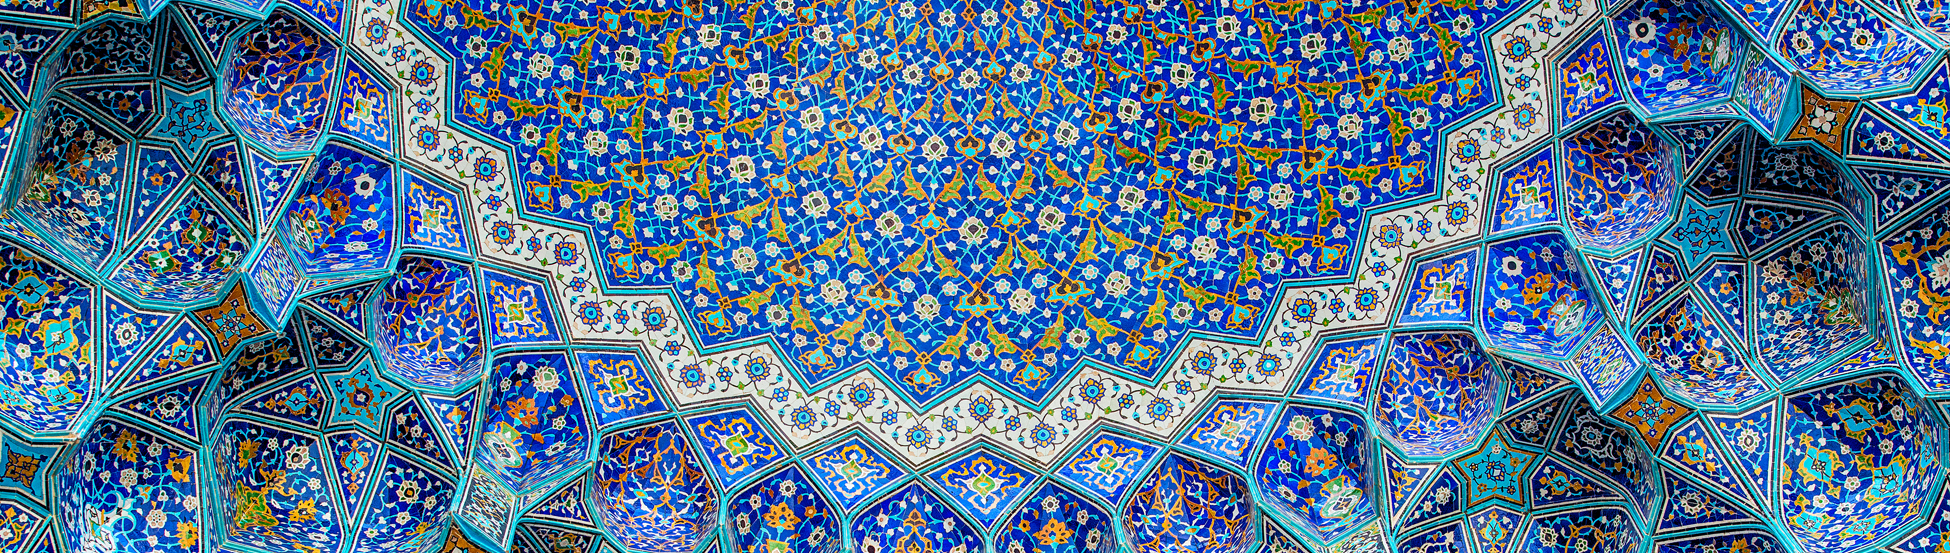 Close up of mosque ceiling tiles